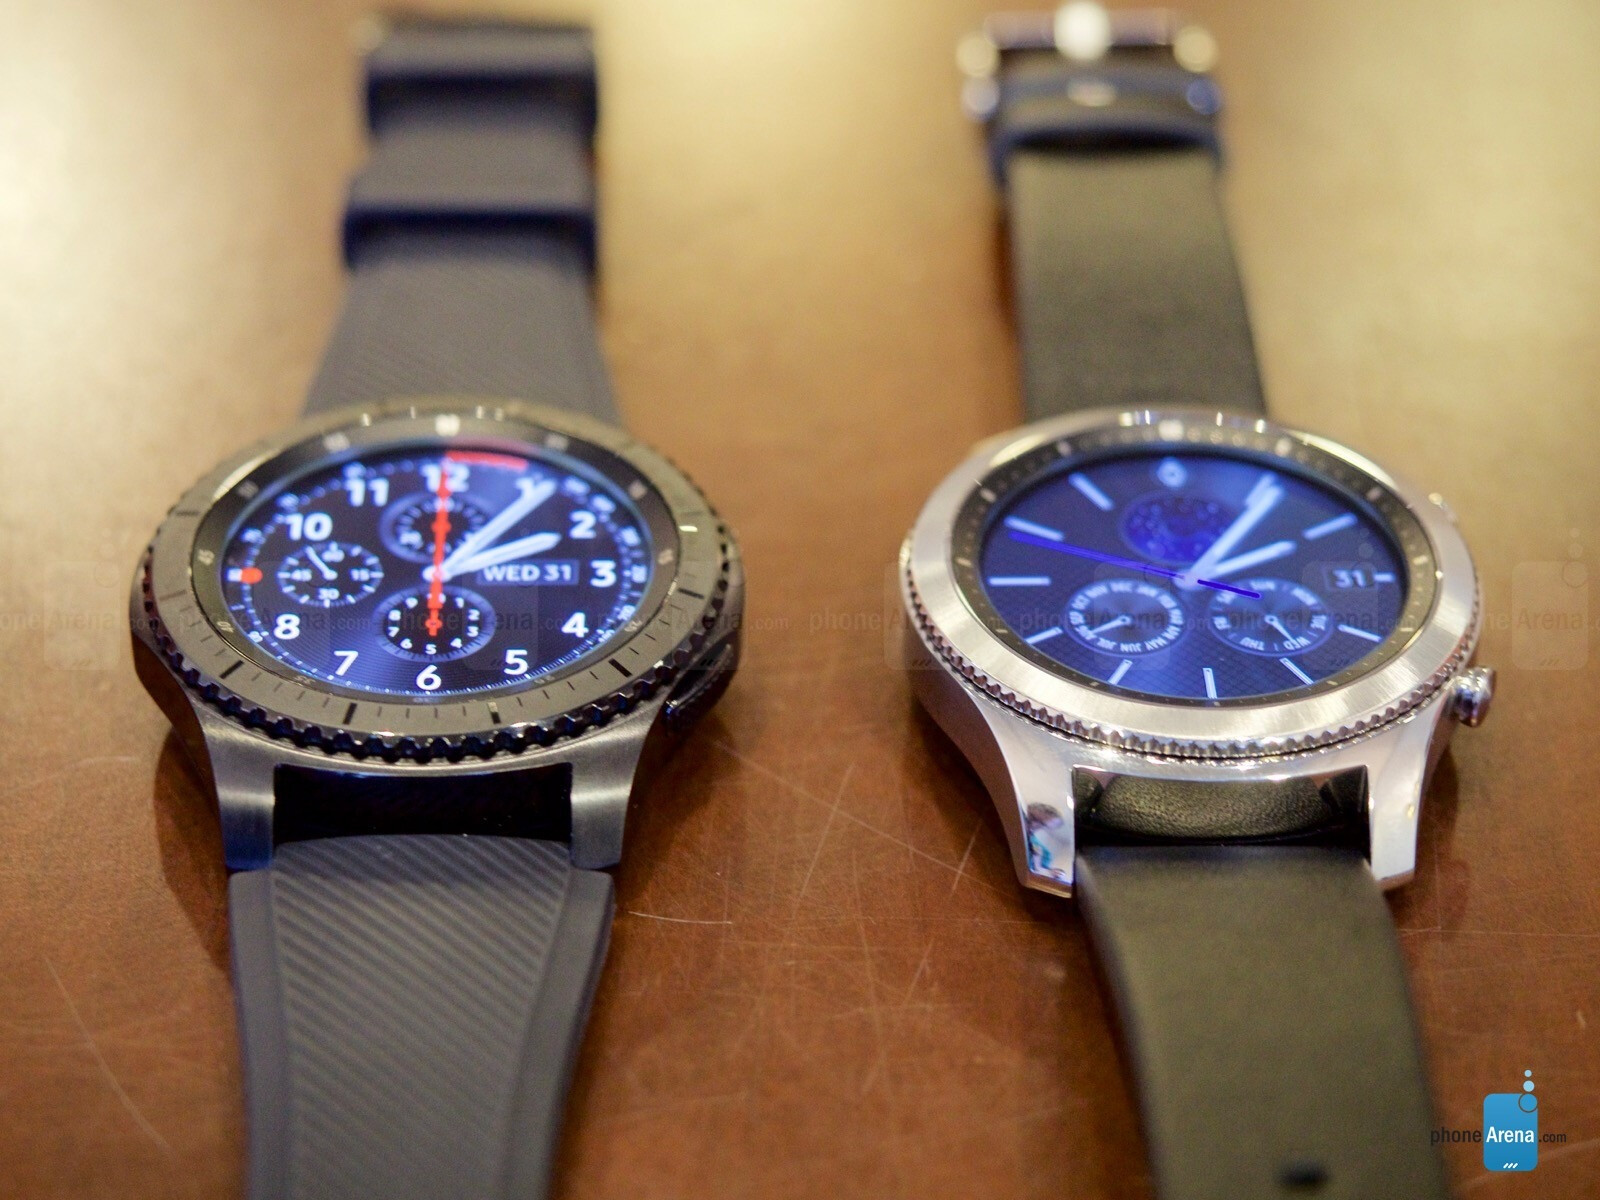 Tizen 3.0 update for Gear S3 halted in early December ...